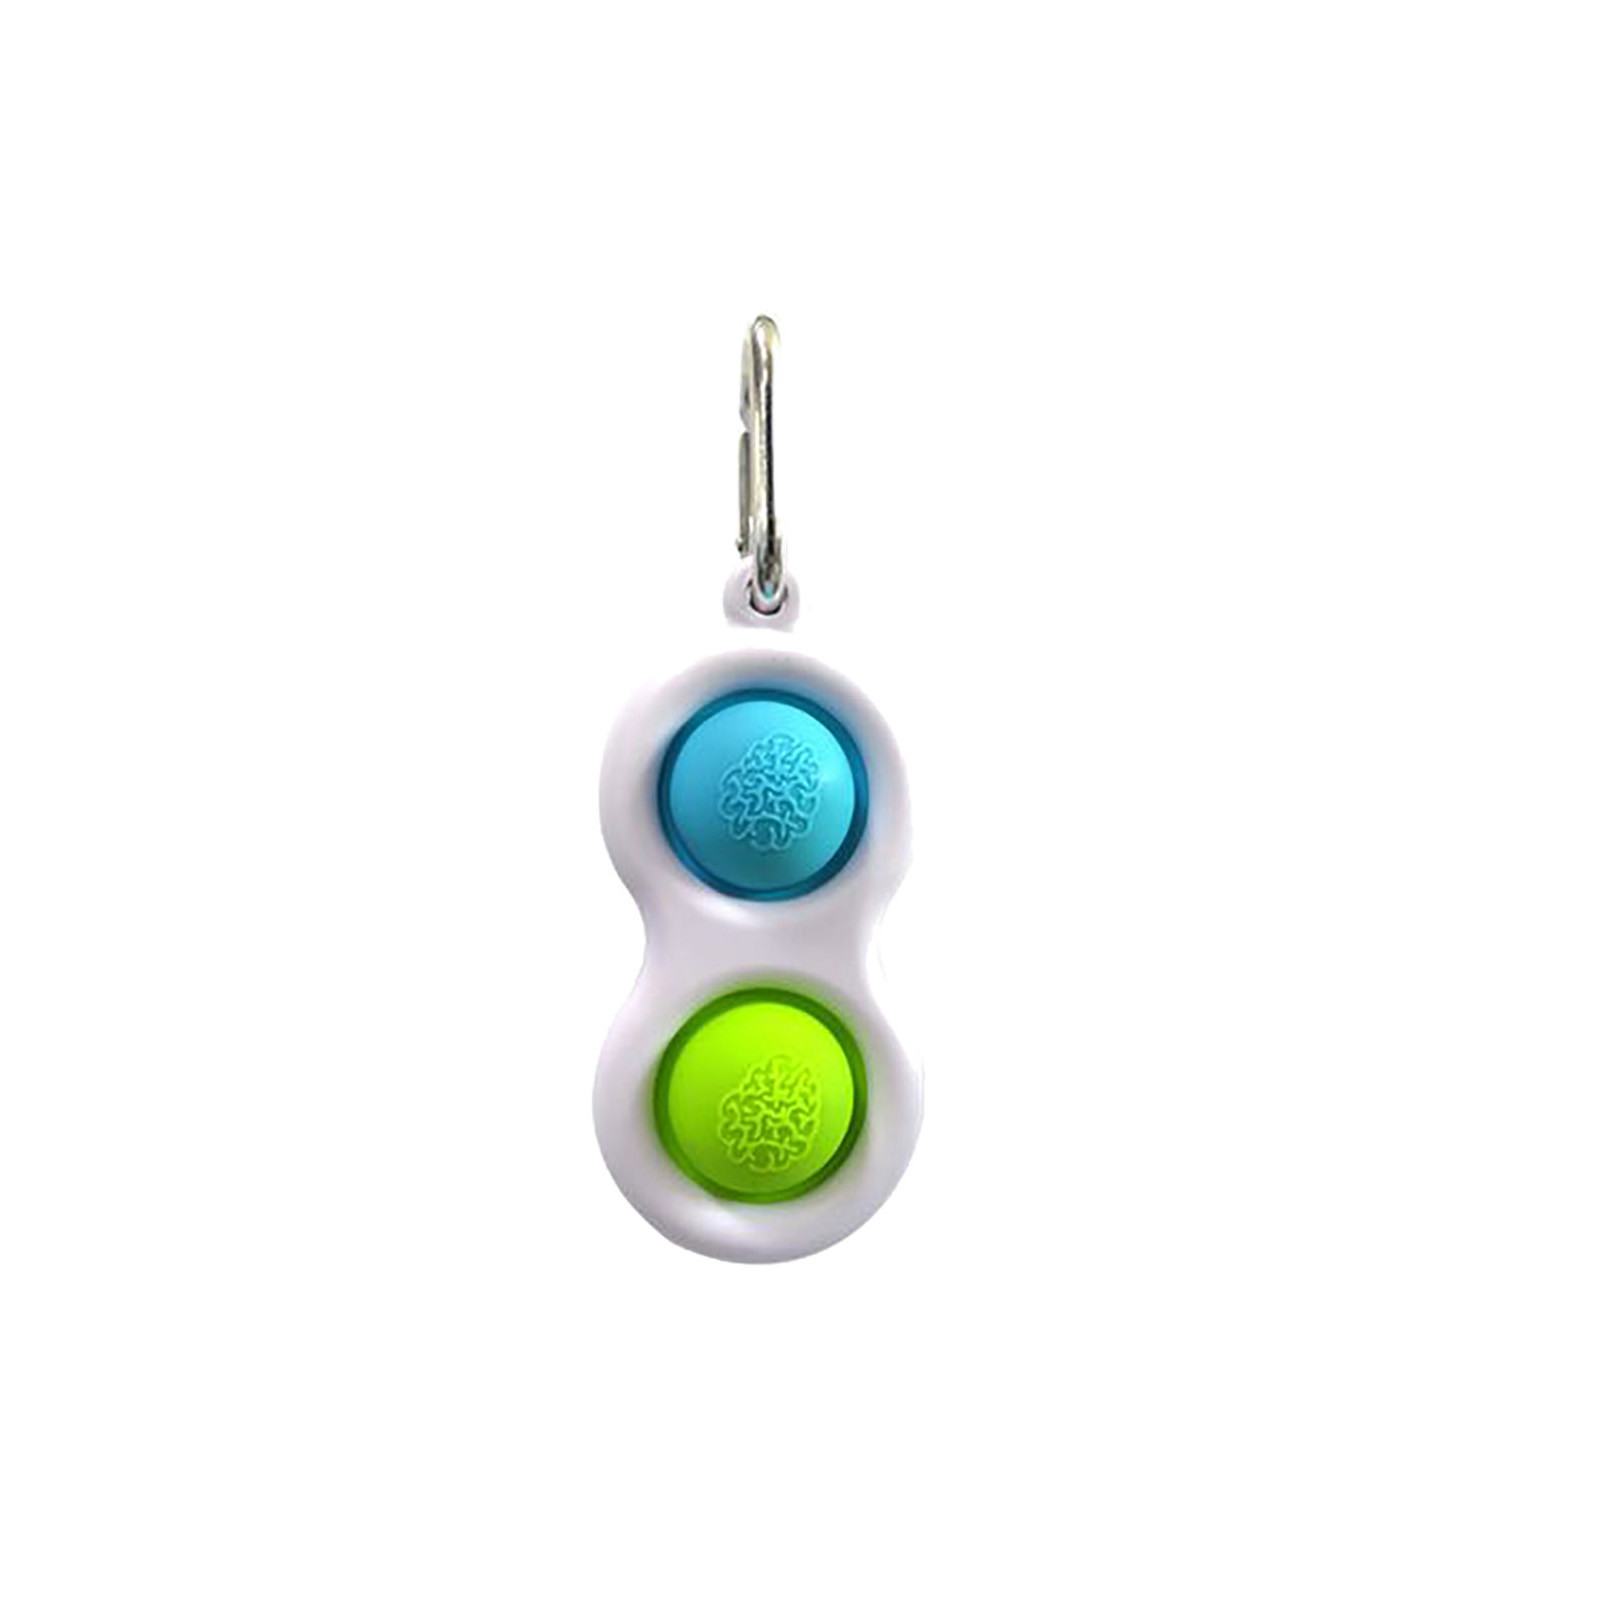 Toy Fidget-Toys Reliever-Board-Controller Montessori Antistress Pressure Simple Dimple img3